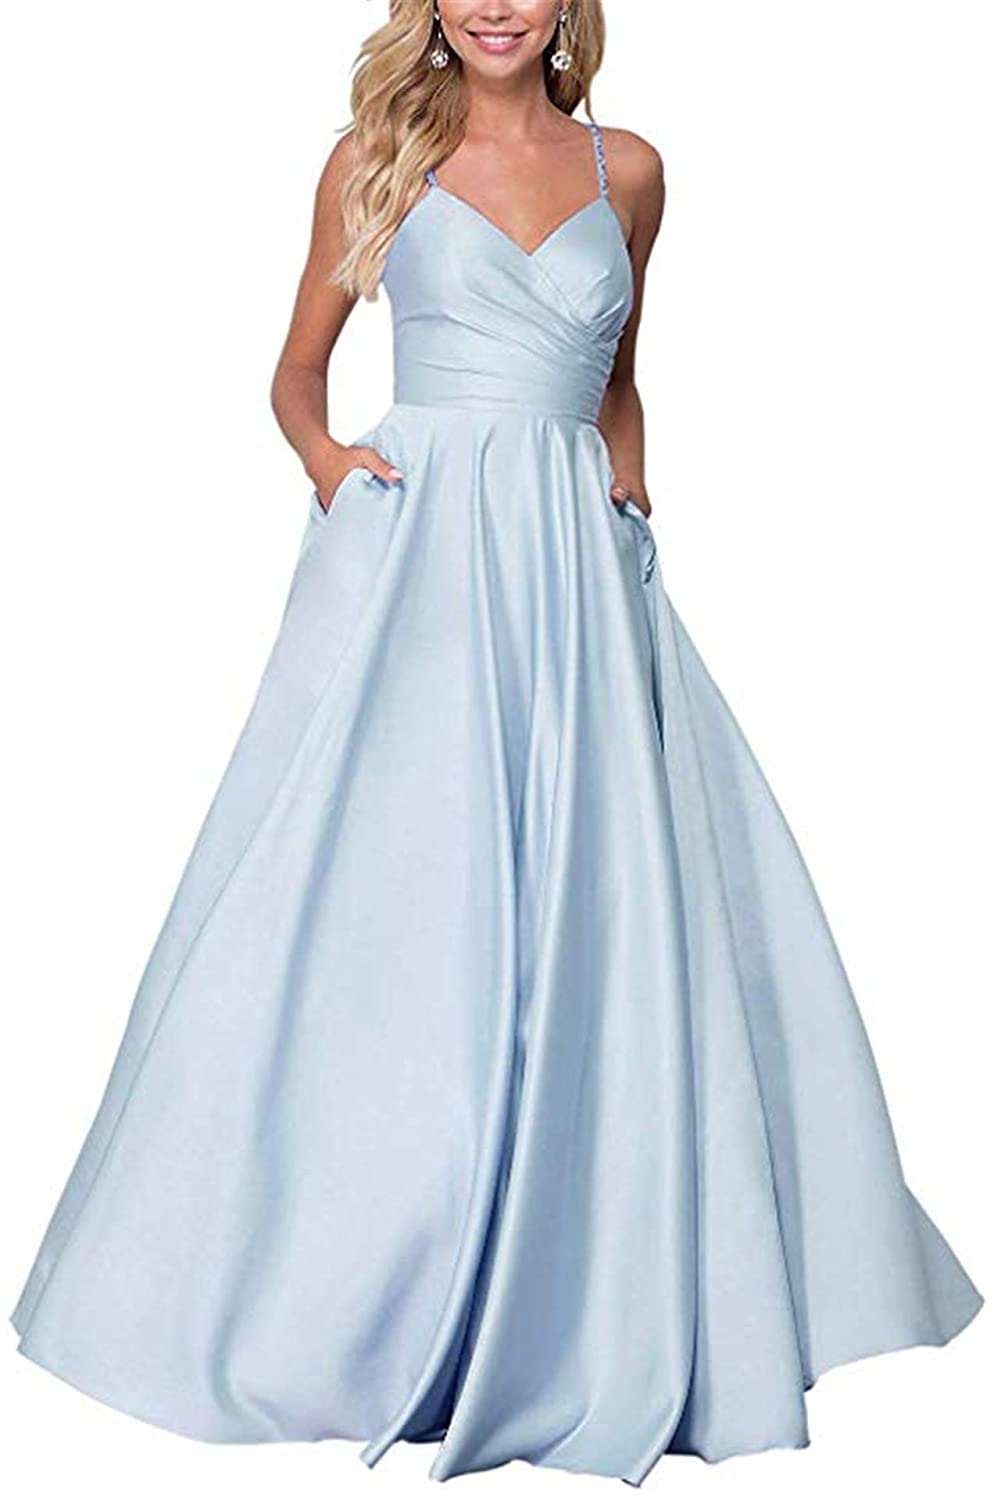 Light bluee QiJunGe Women's V Neck A Line Prom Dress with Pockets Satin Spaghetti Formal Ball Gown